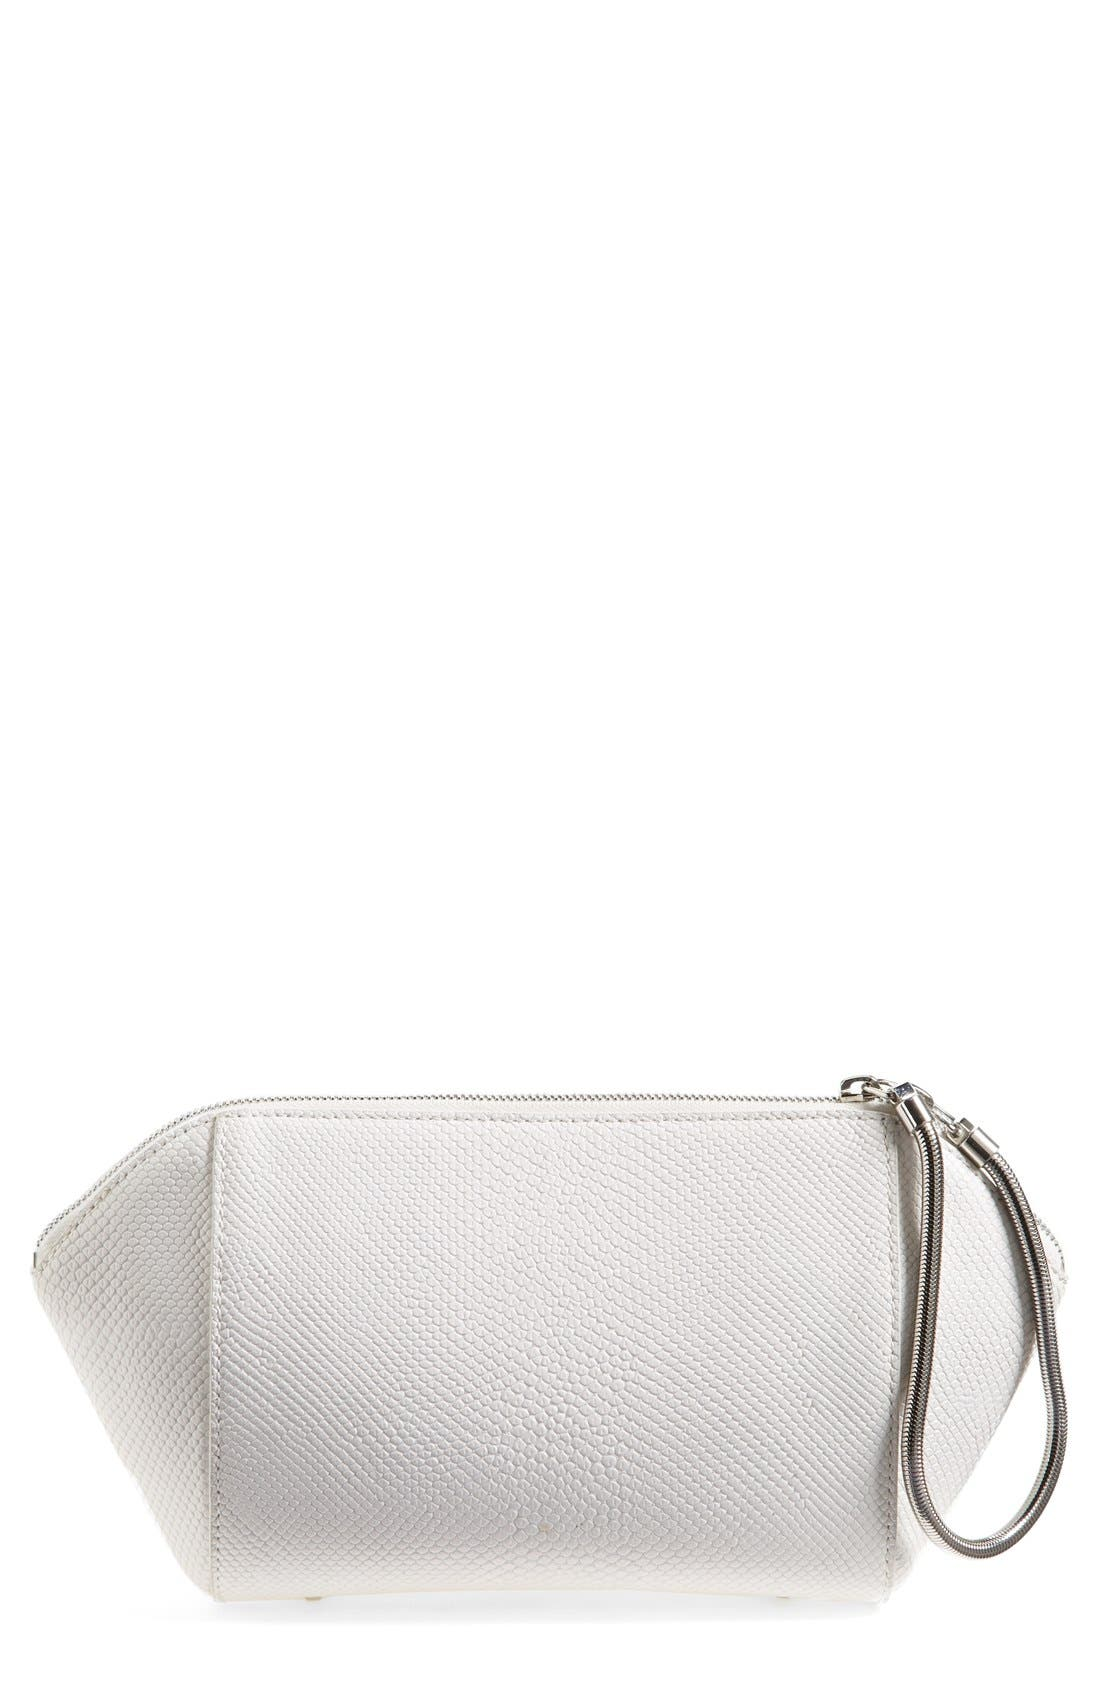 Alternate Image 1 Selected - Alexander Wang 'Chastity' Leather Clutch